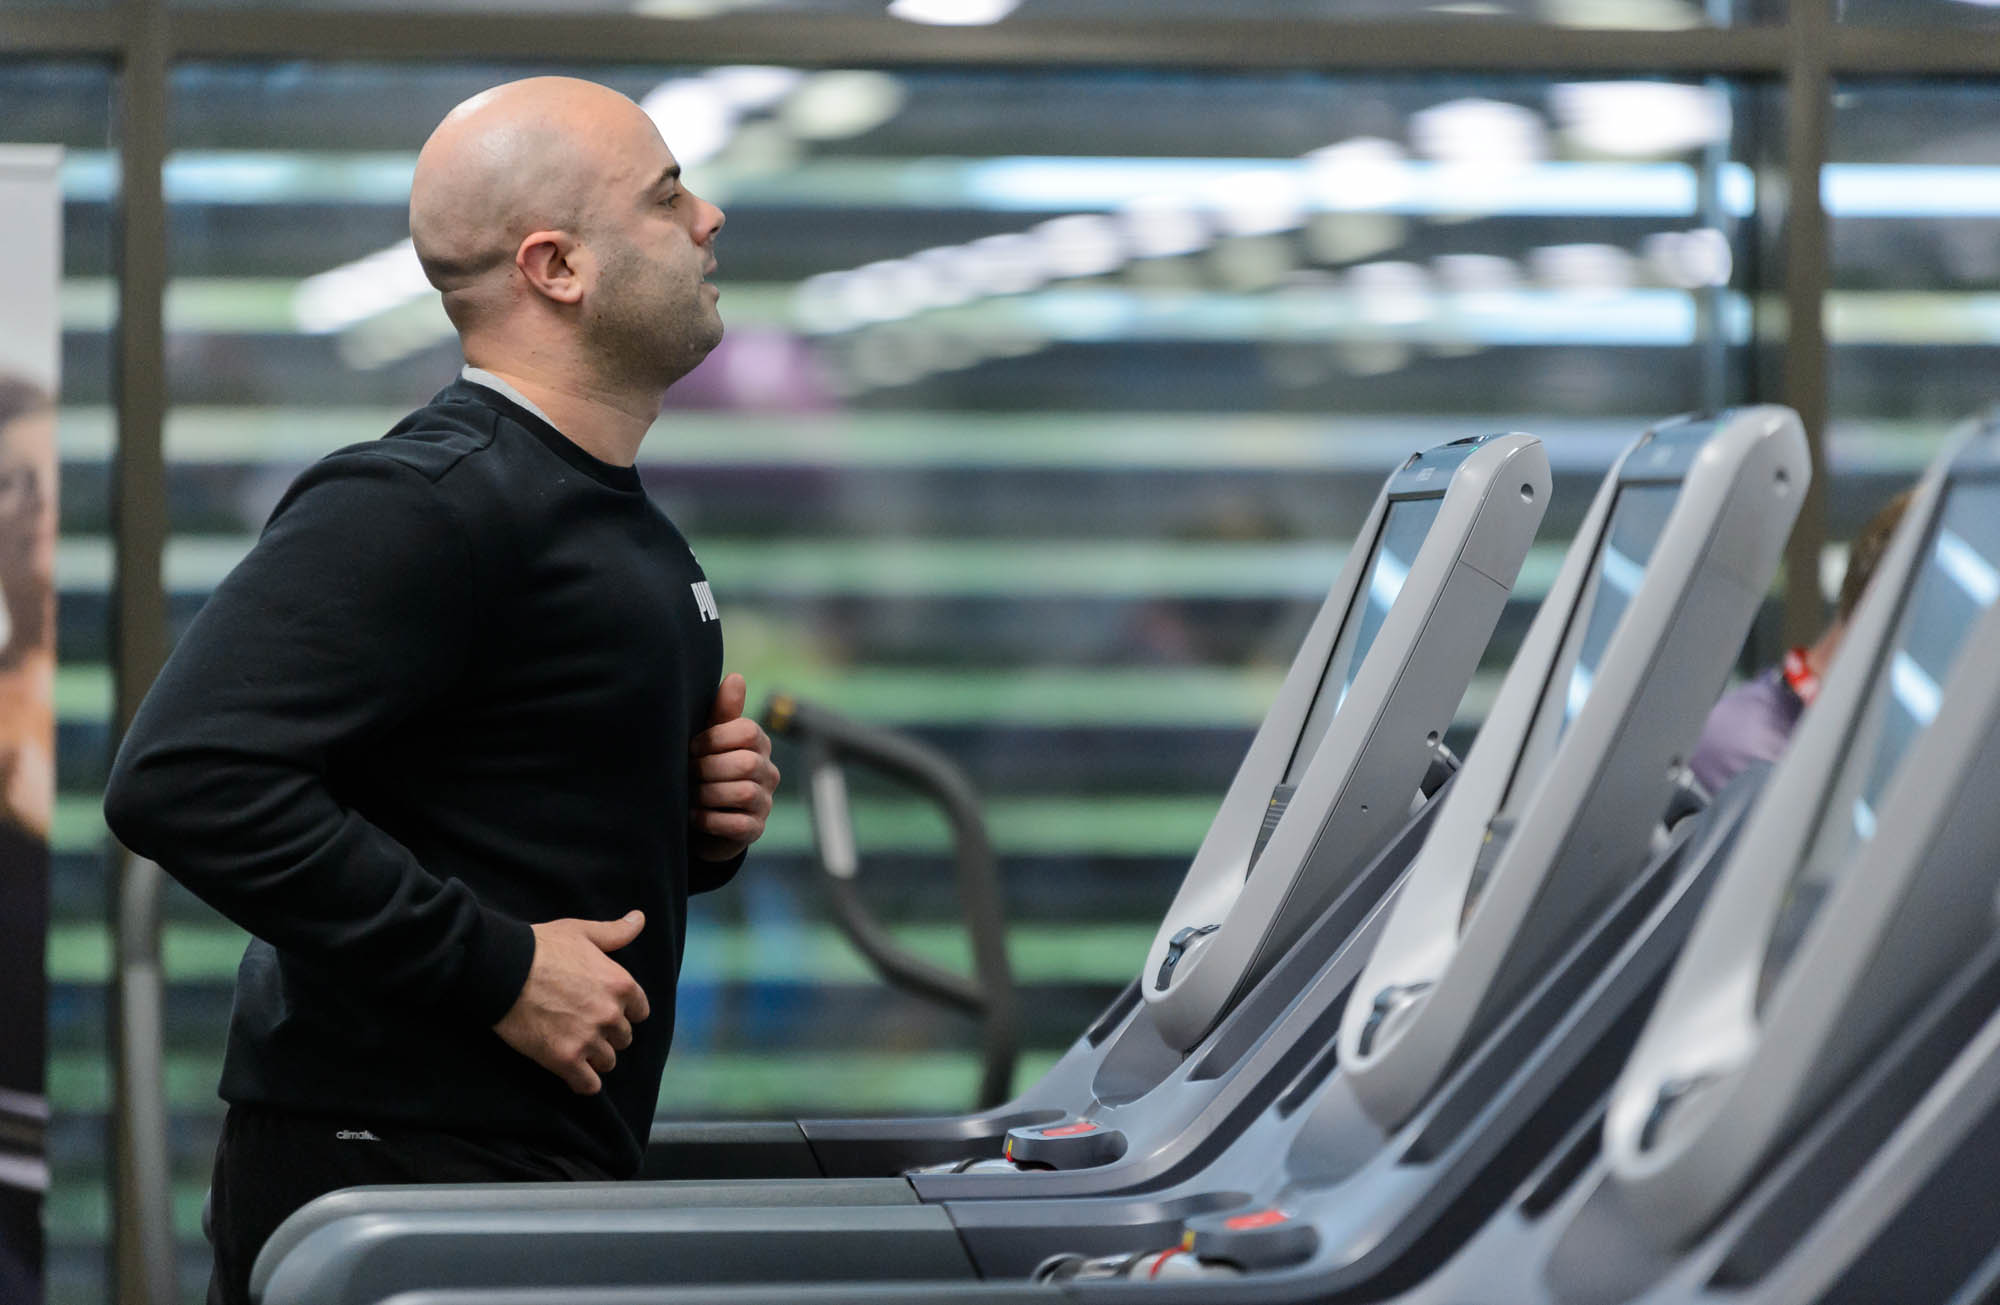 A man runs on a treadmill in a gym